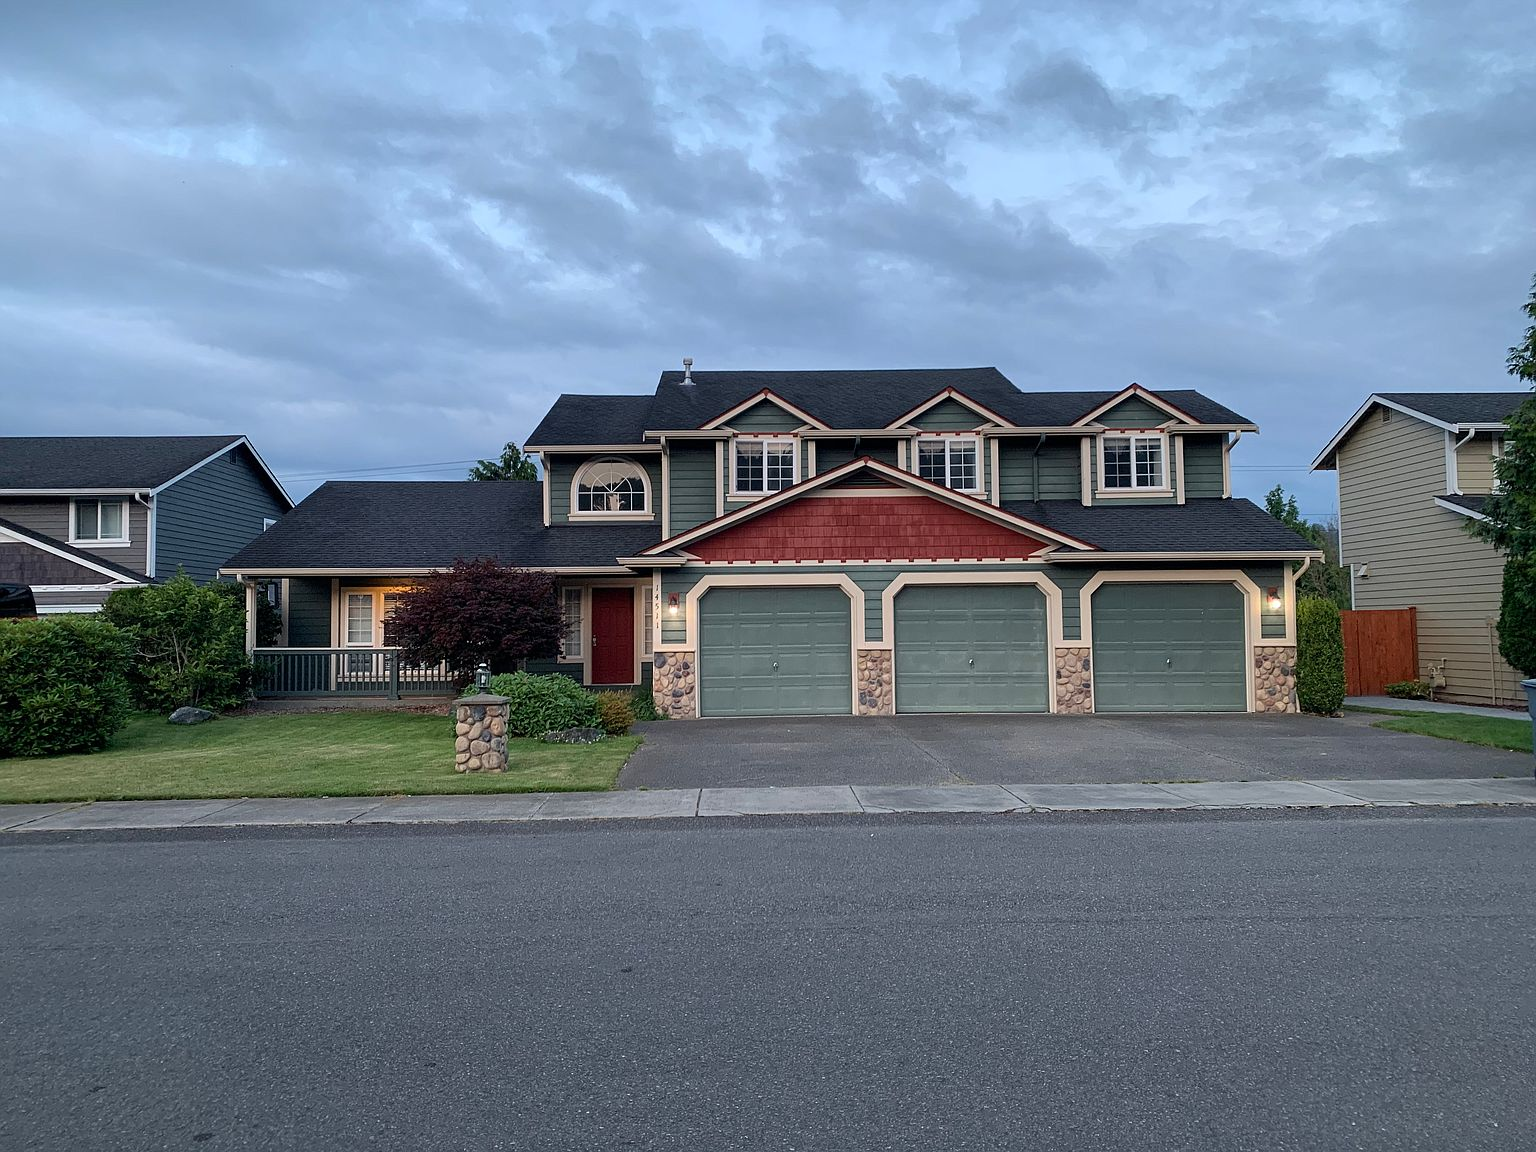 14511 146th Ave E Orting Wa 98360 Zillow